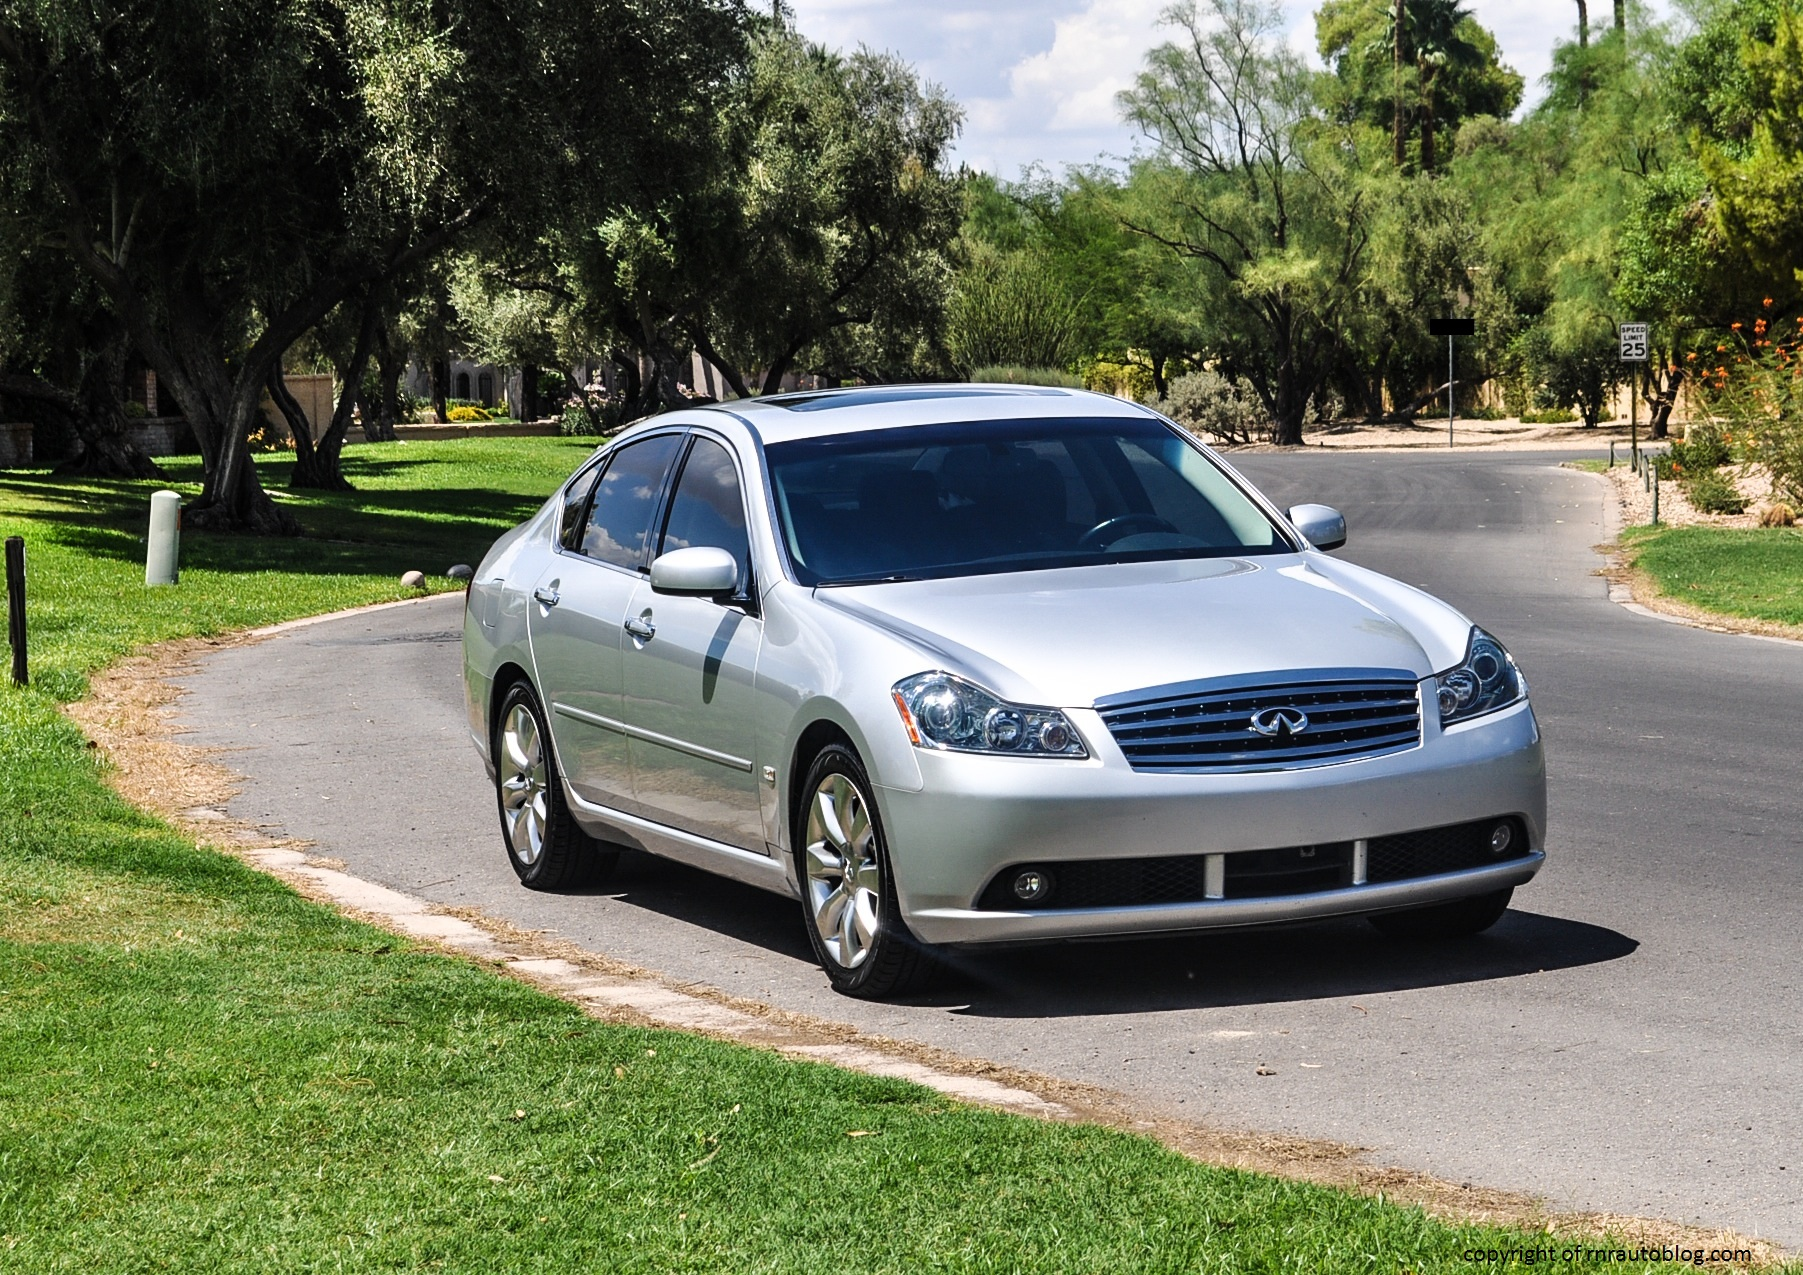 2007 Infiniti M35 Review Rnr Automotive Blog Remote Starter For M35x Ever Since This M Debuted In 2006 I Have Read Consistently Good Reviews About Car Even Recommended A 2011 To My Uncle Which By The